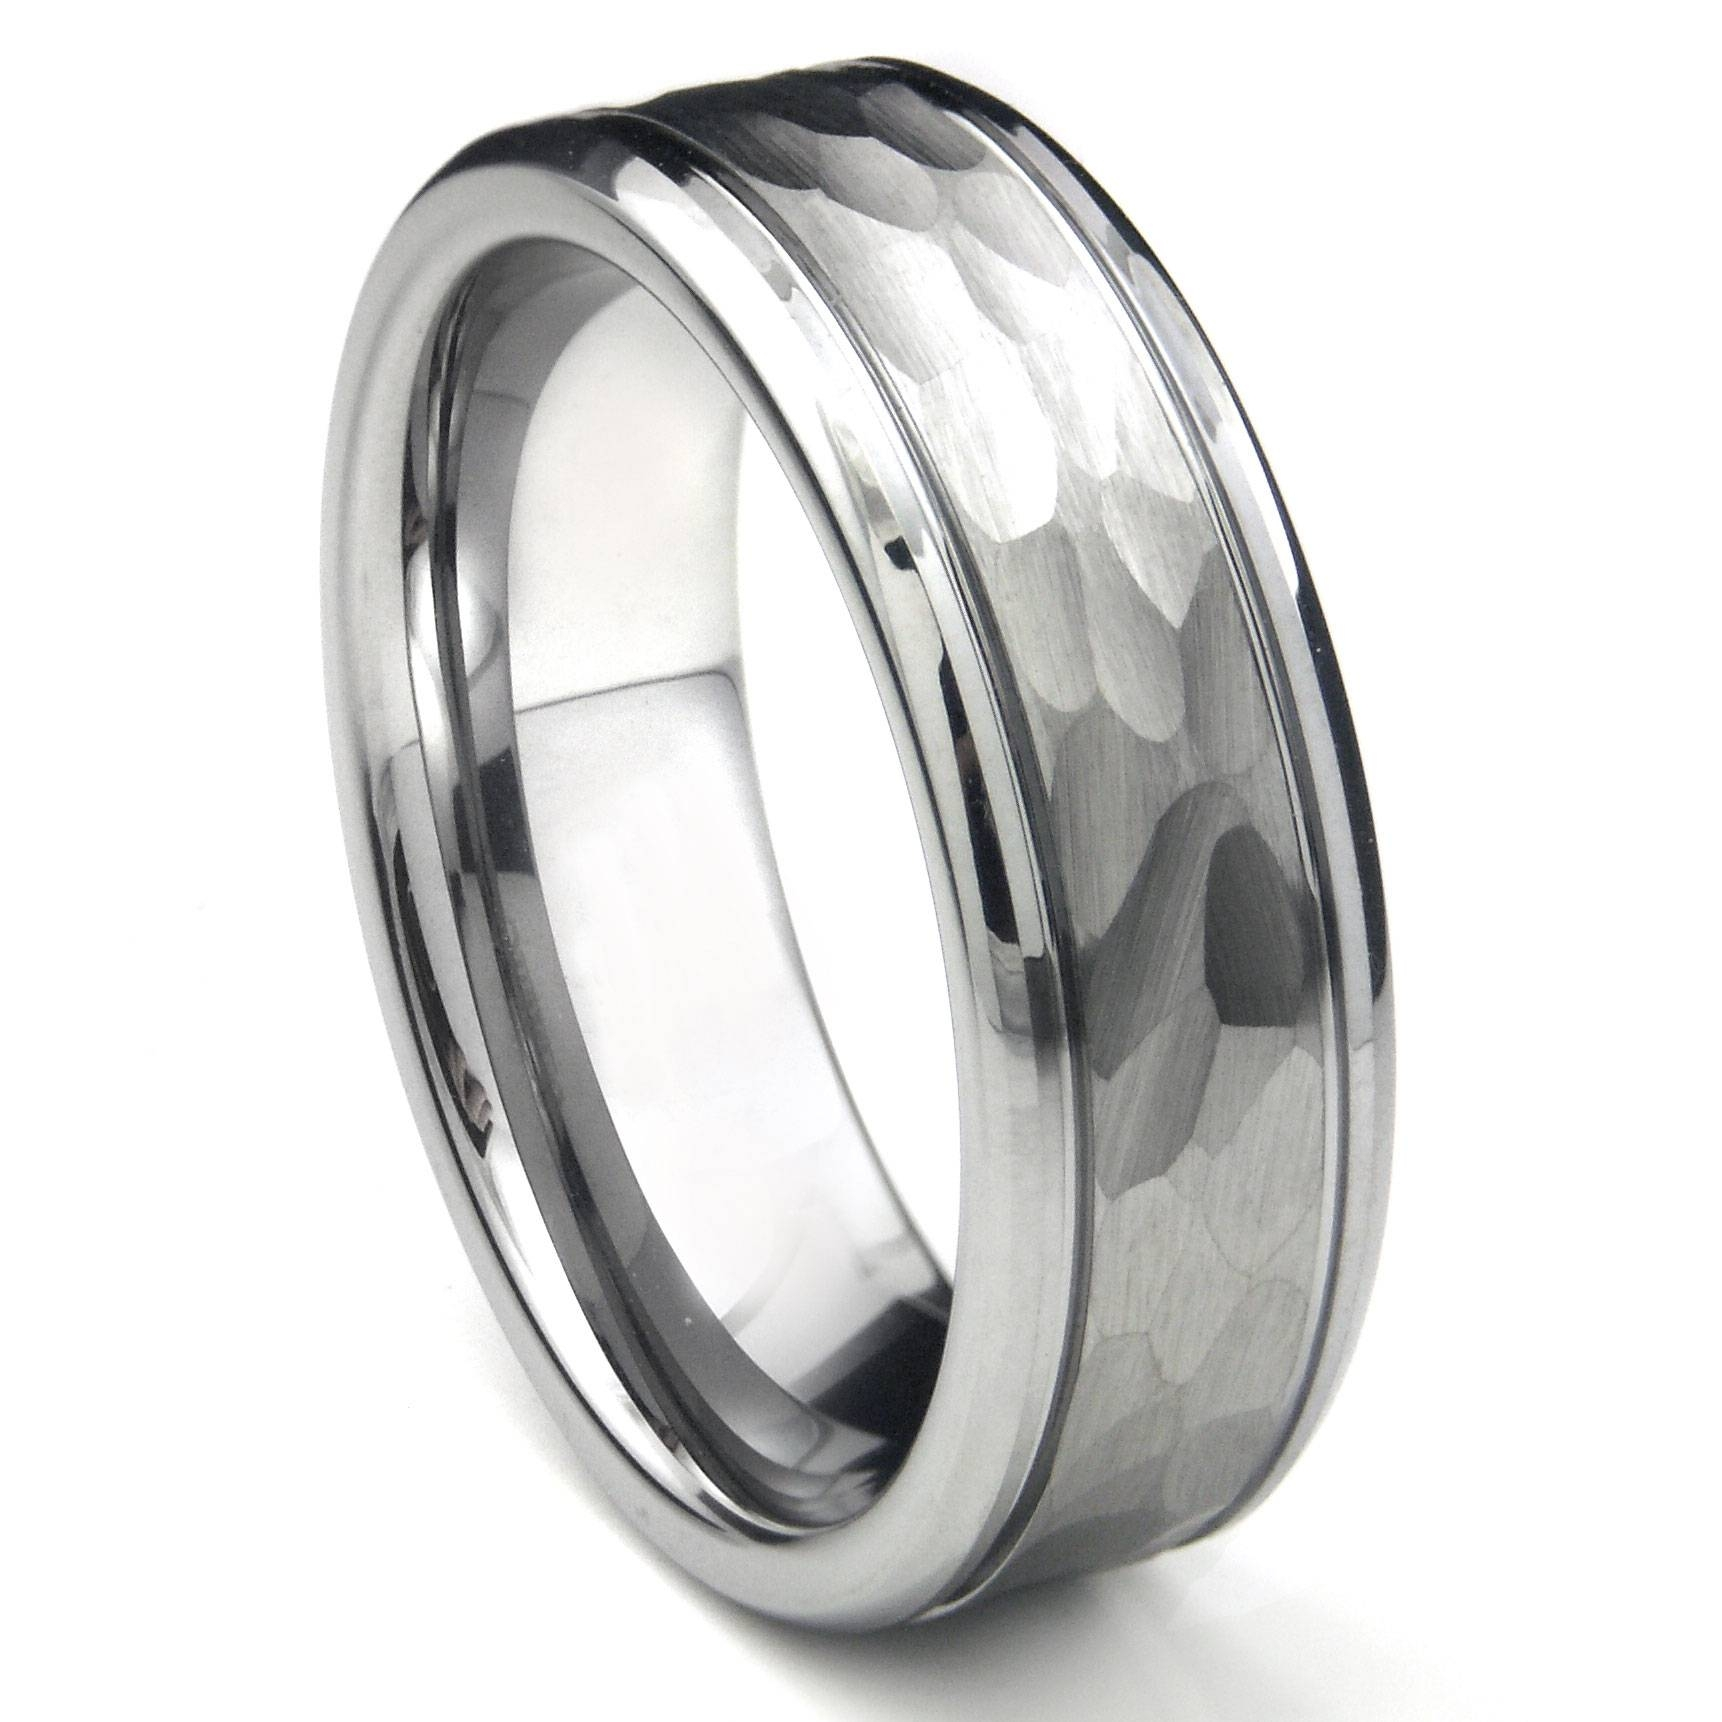 Tungsten Carbide Hammer Finish Wedding Band Ring /w Grooves Throughout Gunmetal Wedding Bands (View 14 of 15)